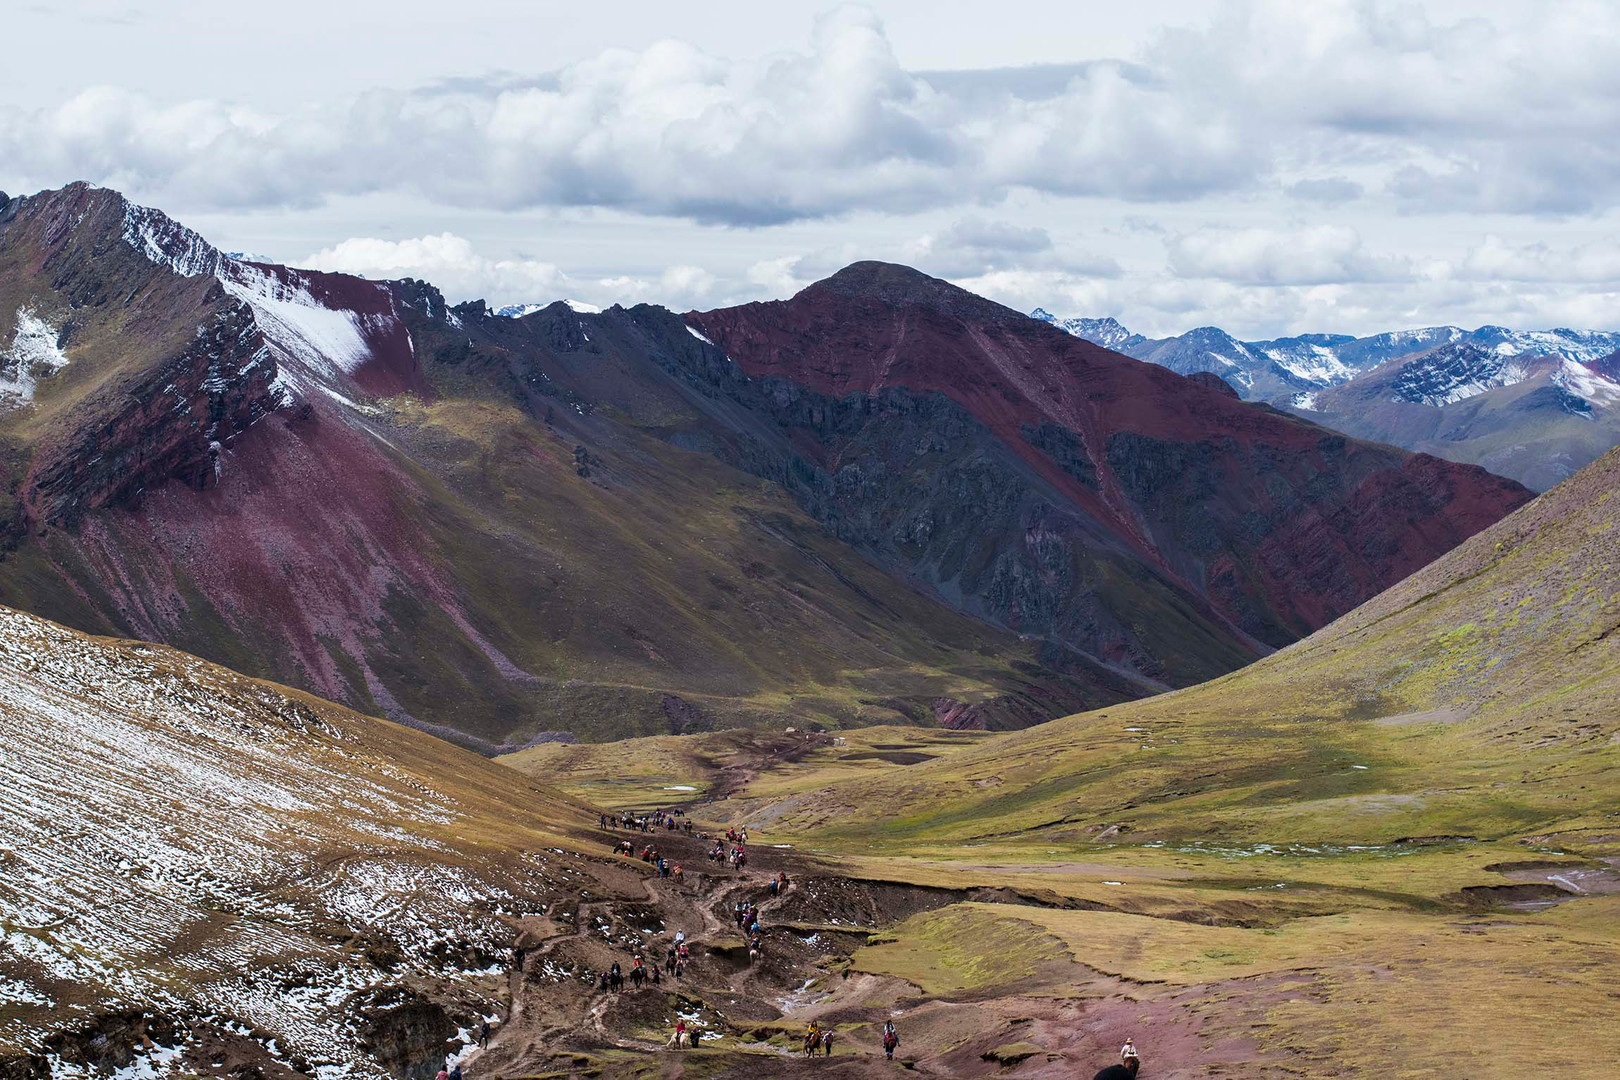 Rainbow Mountain in Peru